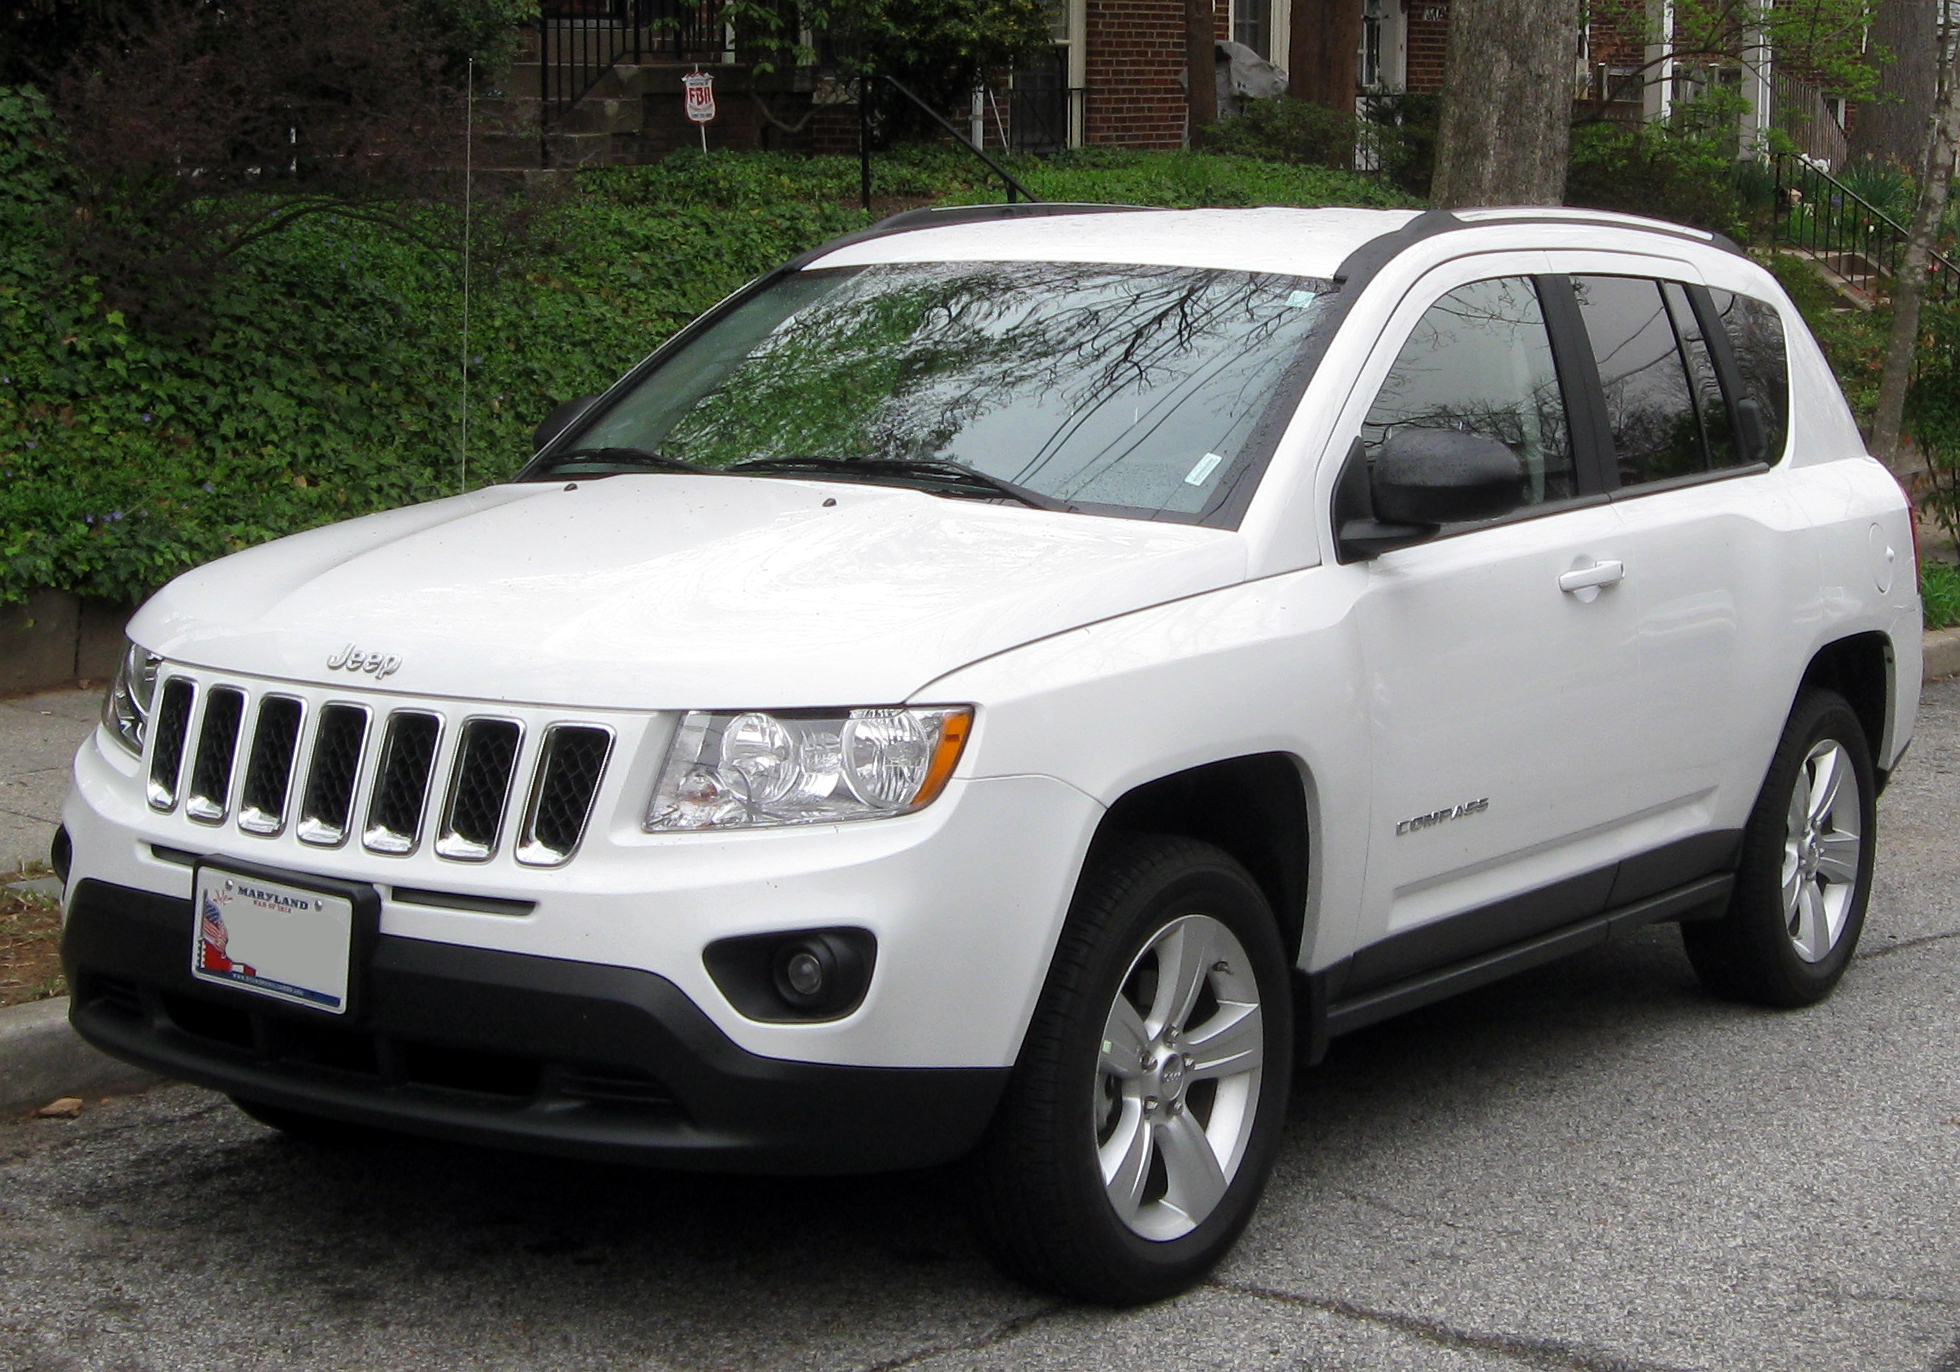 jeep compass images #2